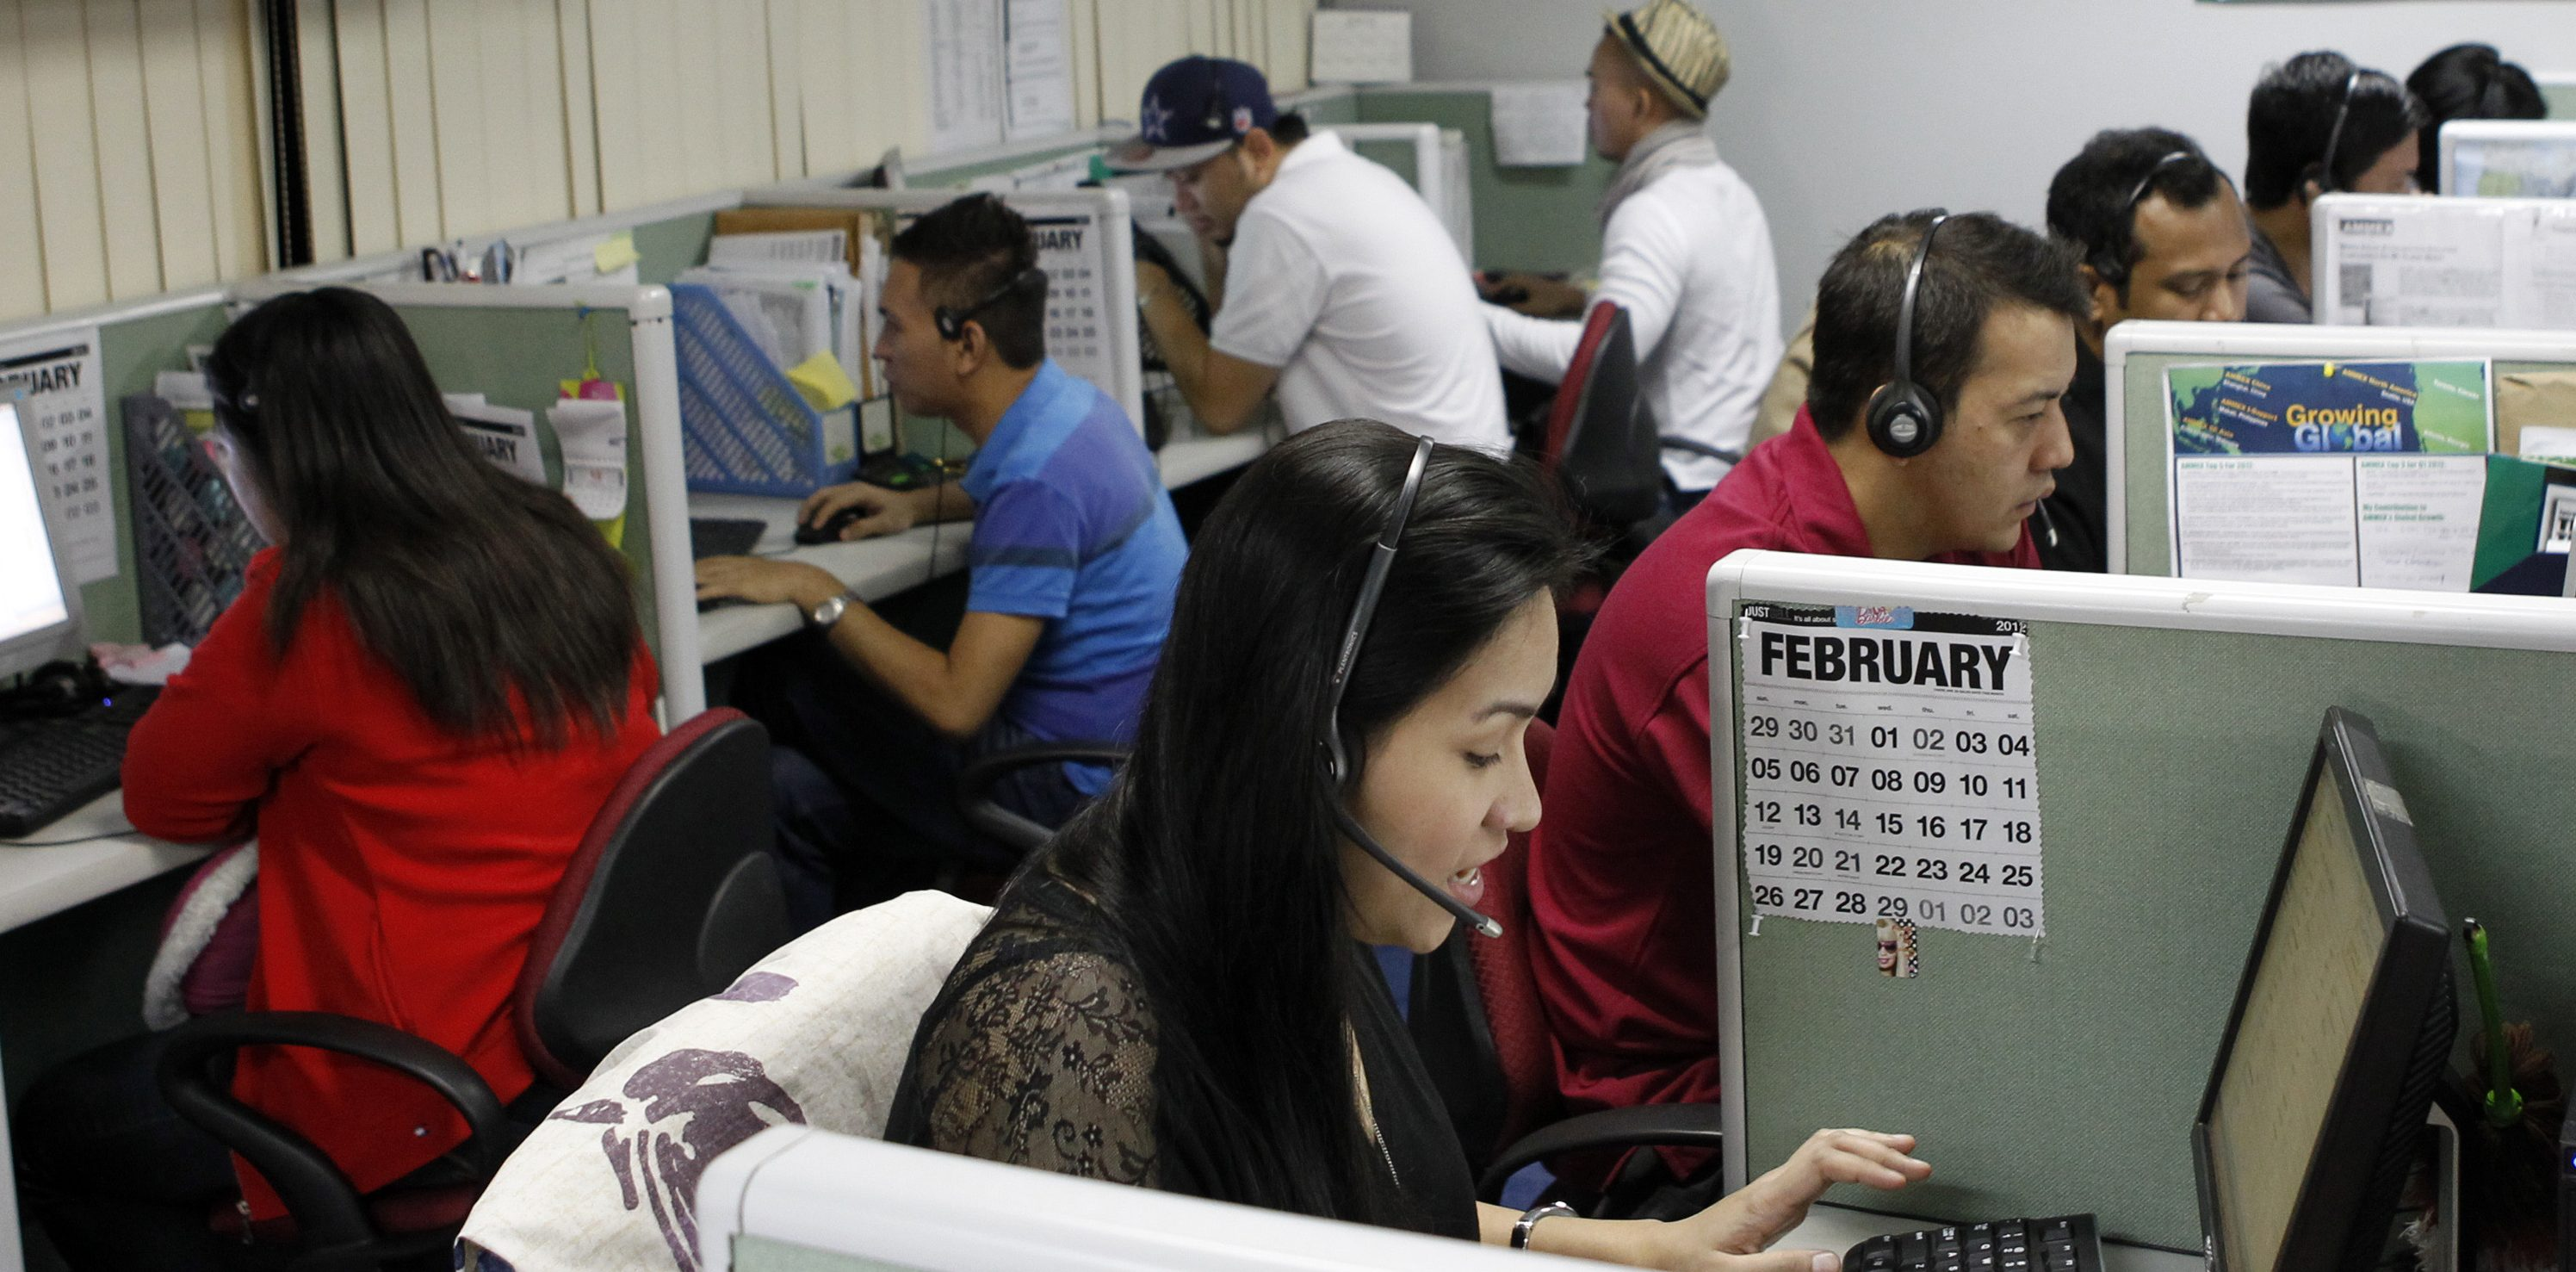 Call center agents work overnight daily to cater to United States clients in Manila's Makati financial district February 6, 2012. The number of Filipinos who work graveyard shifts to answer calls on behalf of big multinational companies like Citigroup and JPMorgan Chase is now greater than India's 350,000, earning the Philippine's the title - Call Centre Capital of the World. By 2016, the Philippines wants to double the size of the local BPO market to $25 billion, employing 1.3 million workers from 640,000 at the end of 2011. But to be able to that the Southeast Asian nation must convince investors it has more to offer than a huge pool of english-speaking talent. Picture taken February 6, 2012.